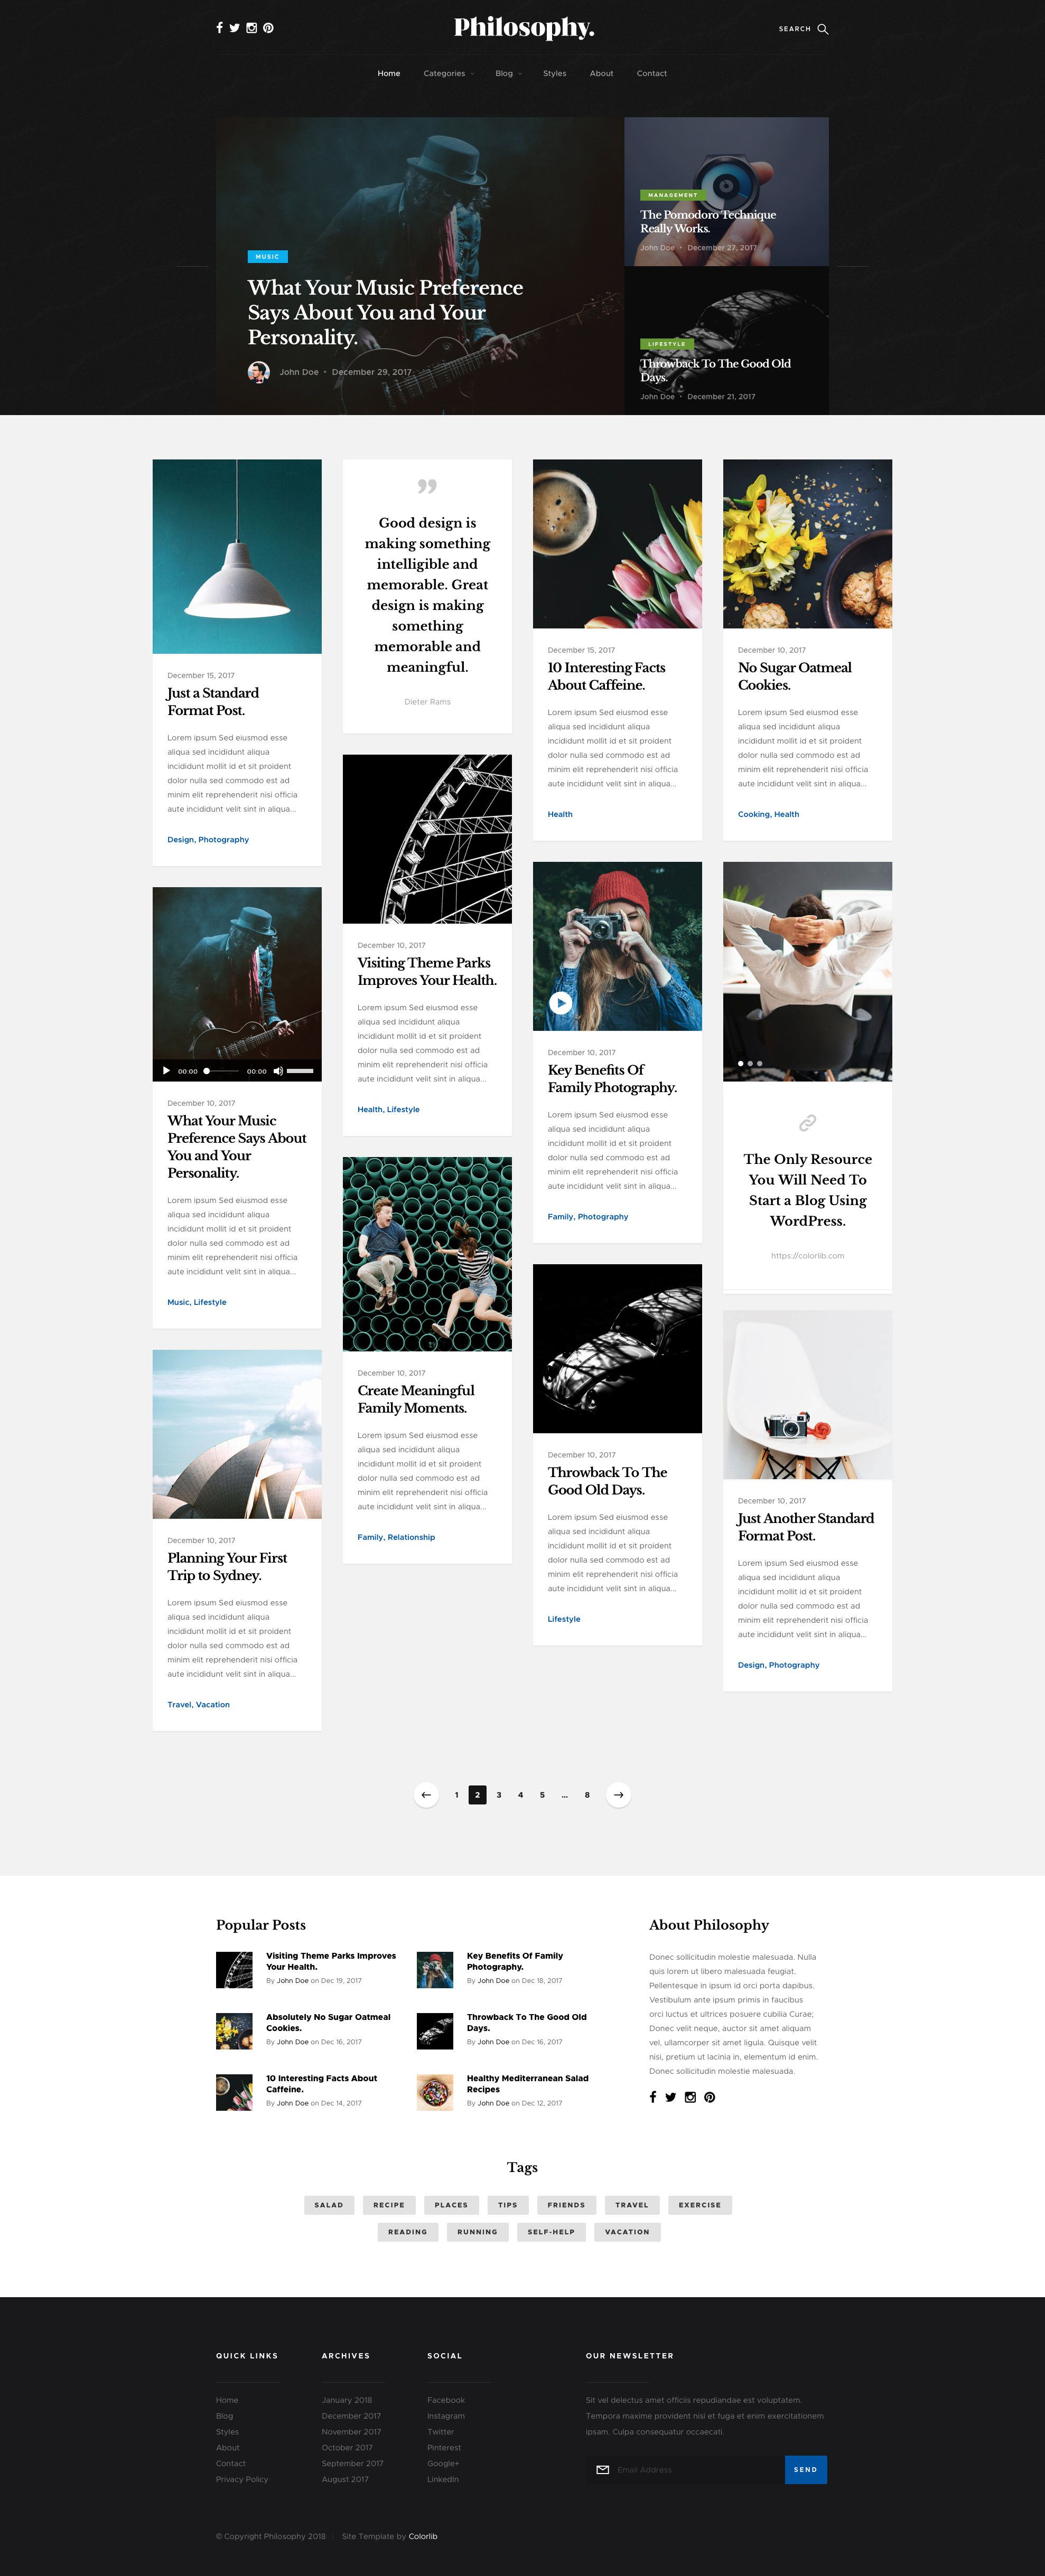 Philosophy Free Responsive Html5 Bootstrap Masonry Blog Template Htmltemplates Co Blog Template Html5 Templates Templates